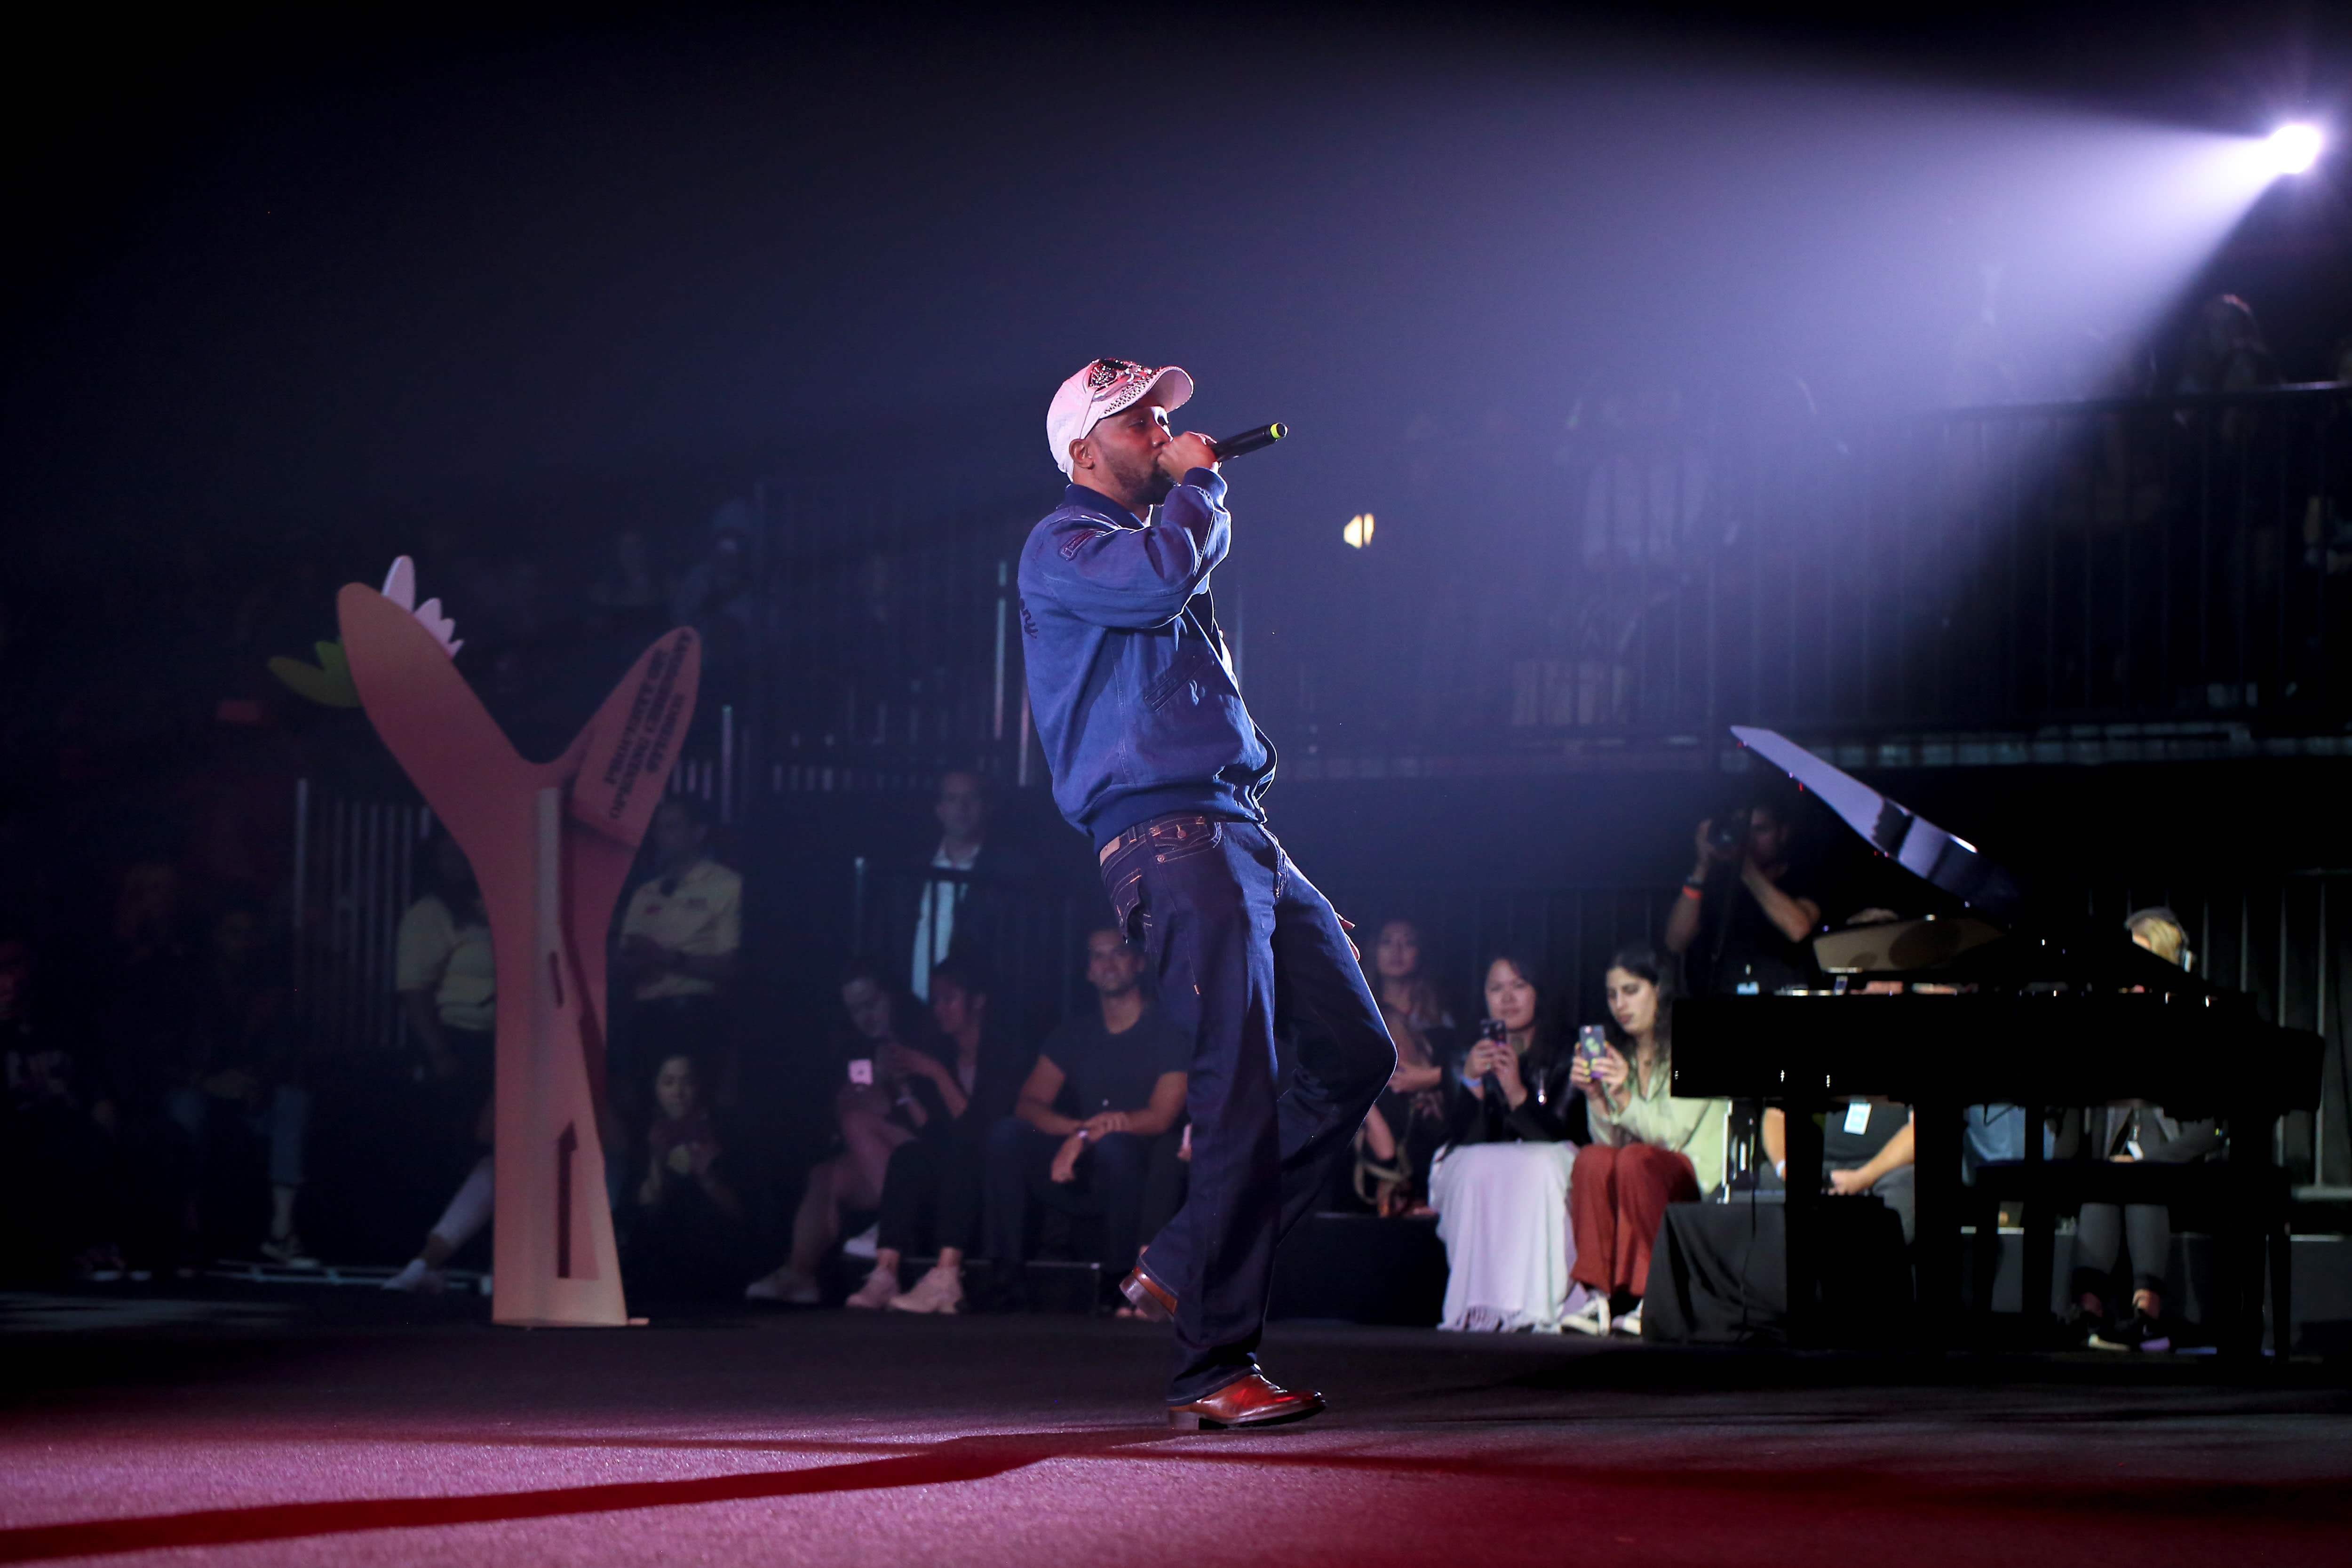 RZA at Opening Ceremony show